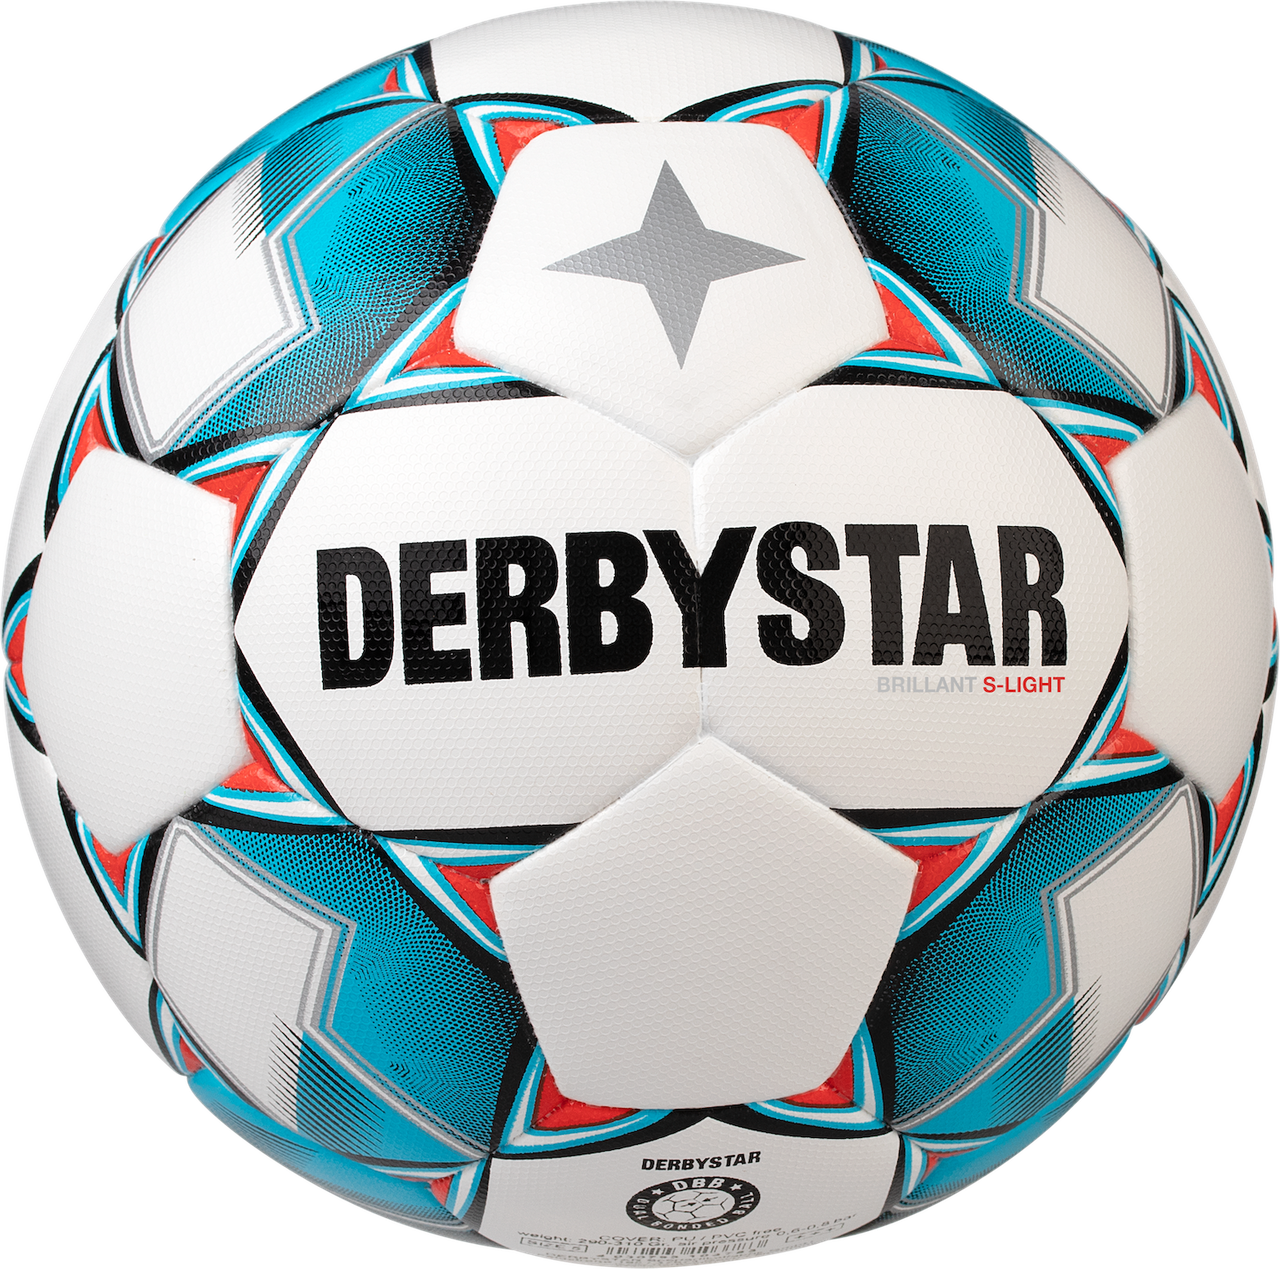 DERBYSTAR Youth Ball - BRILLANT S-LIGHT Dual Bonded